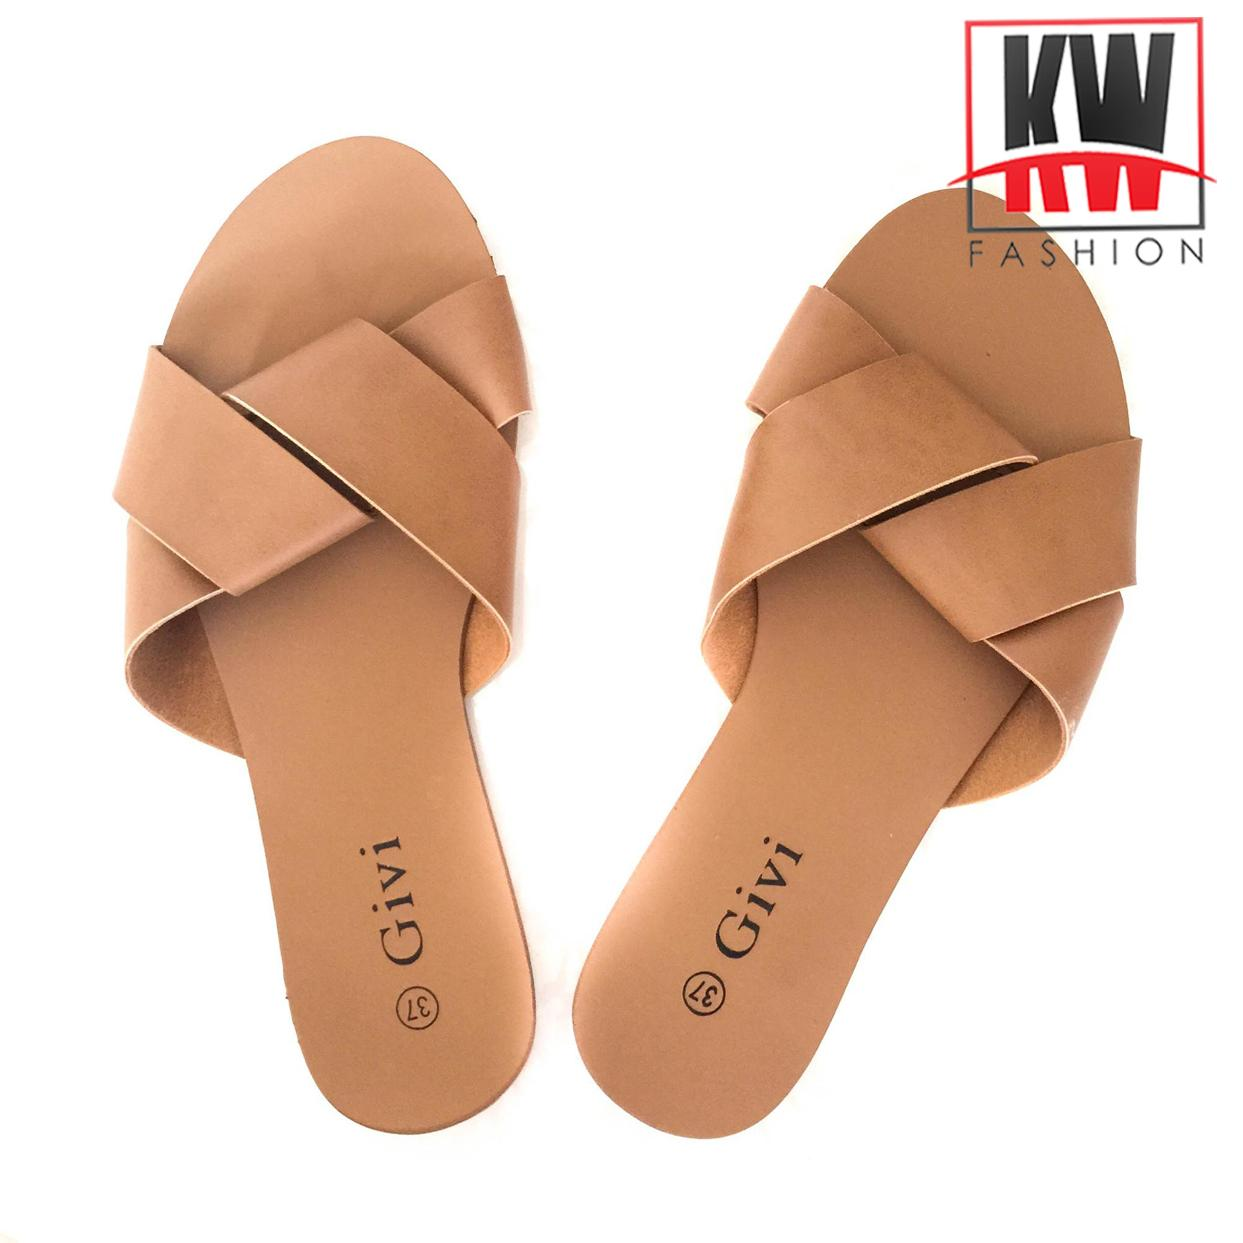 d366430288b096 Womens Sandals for sale - Ladies Sandals online brands